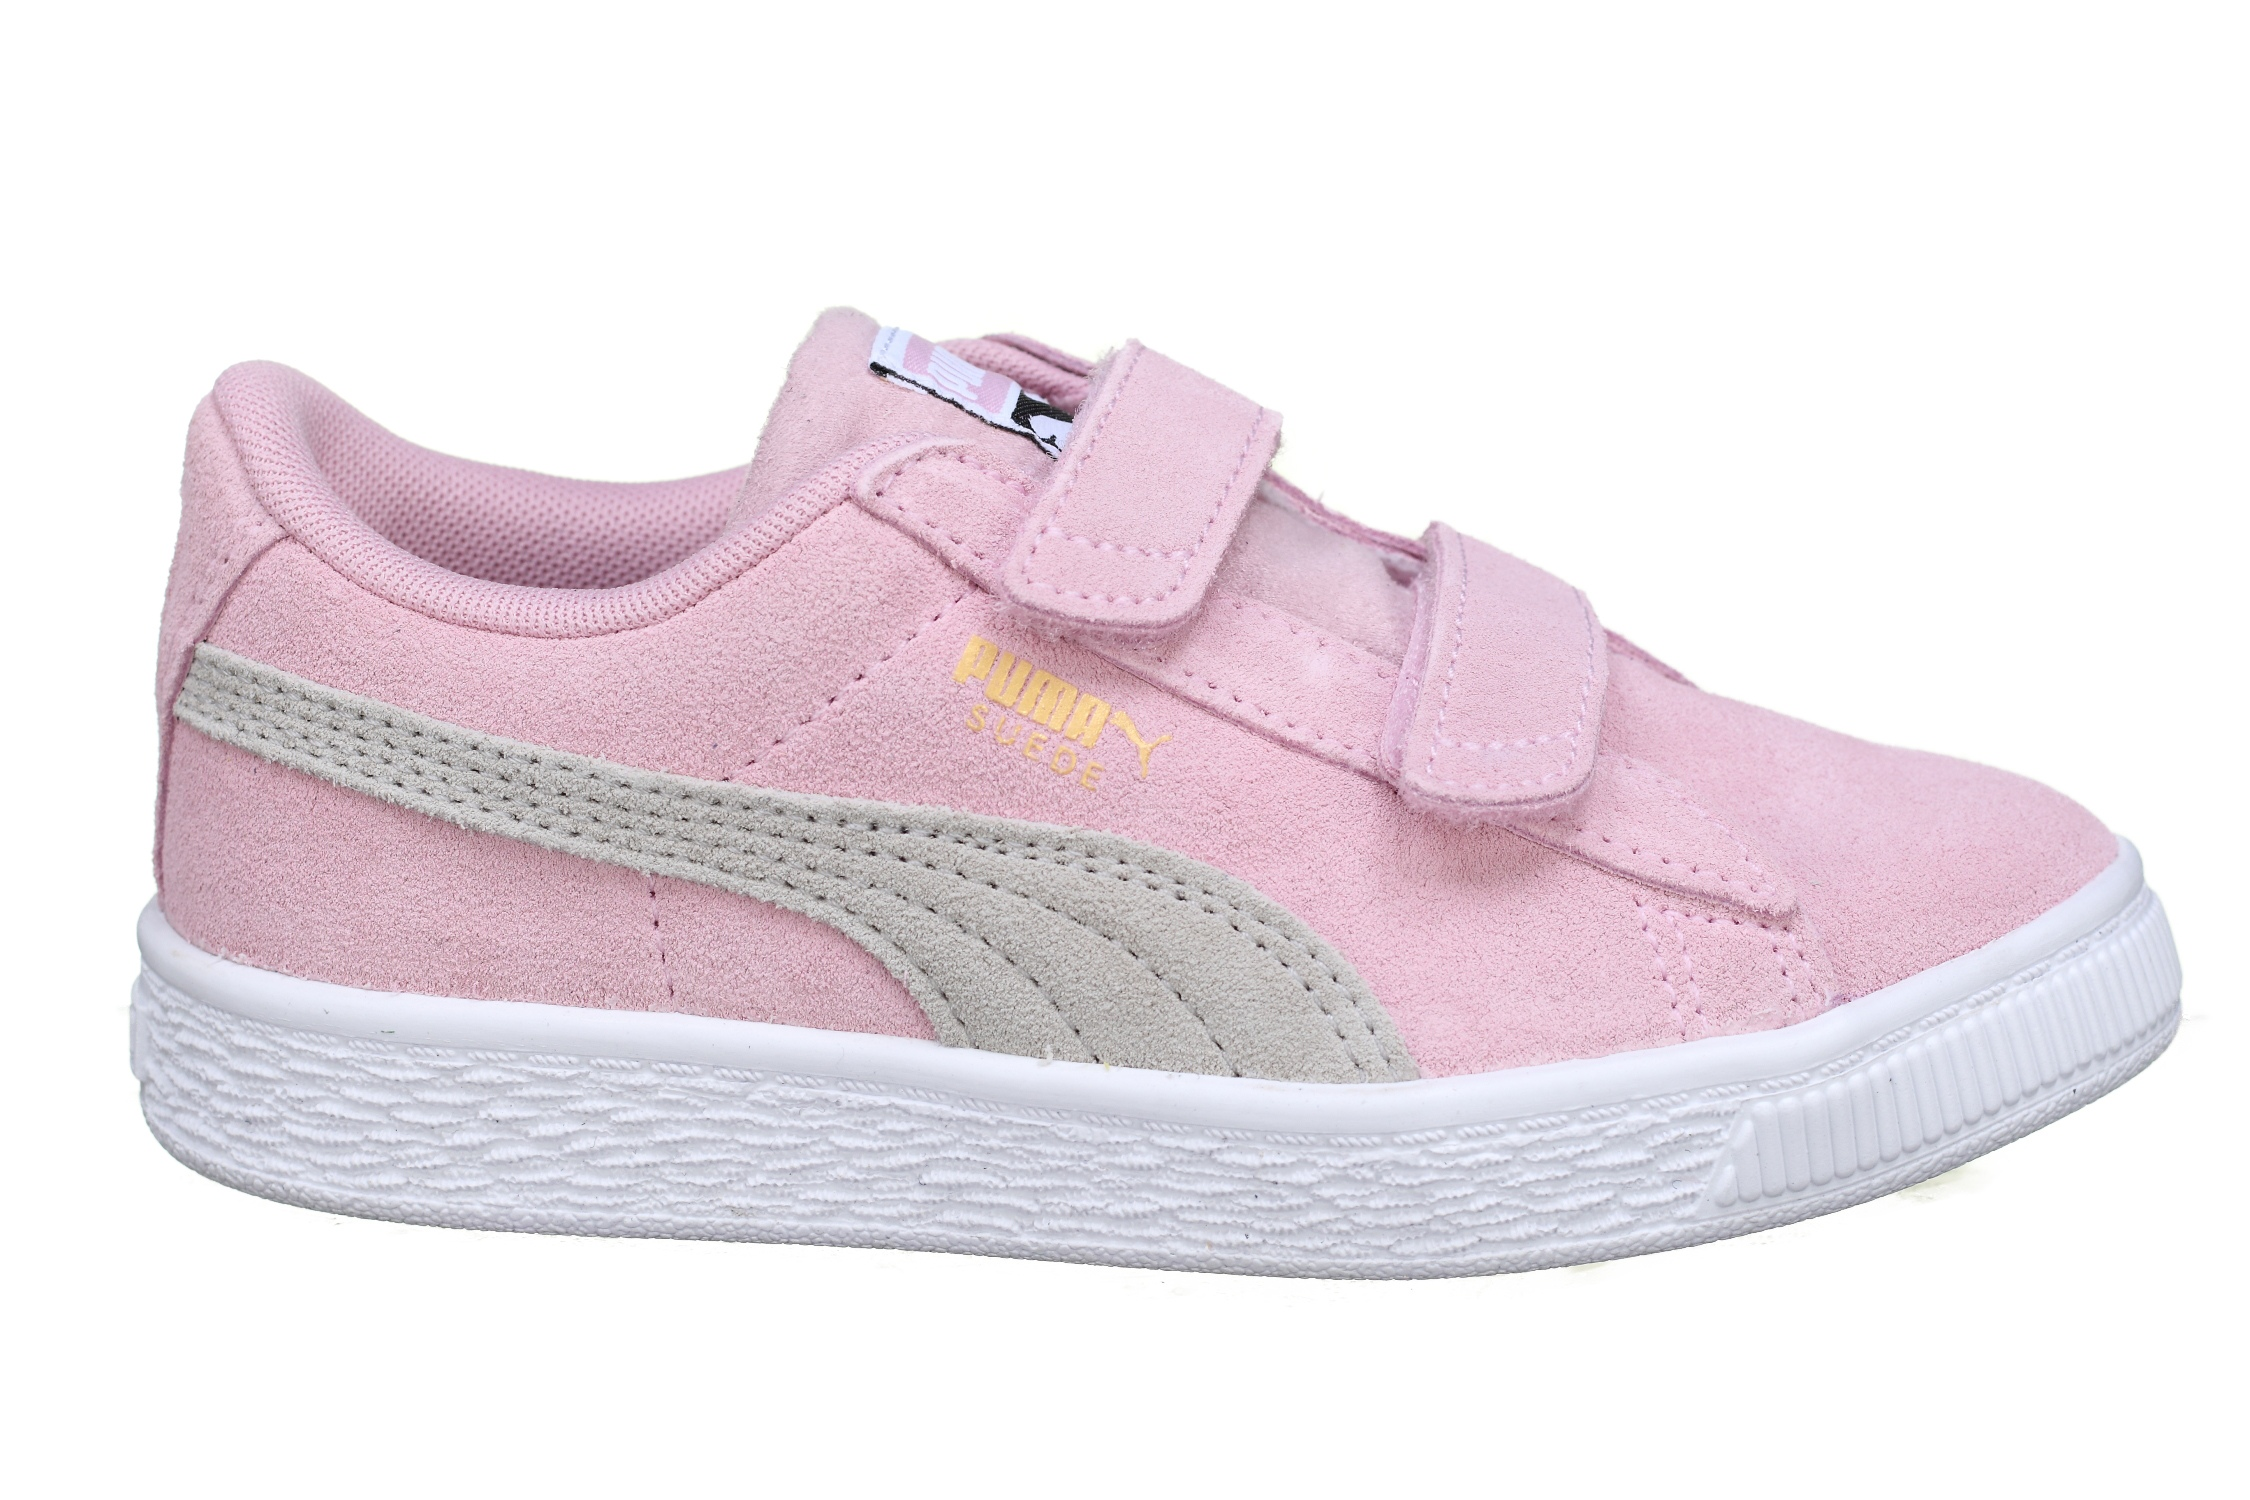 https://www.leadermode.com/164756/puma-suede-classic-v-ps-365075-23-rose.jpg